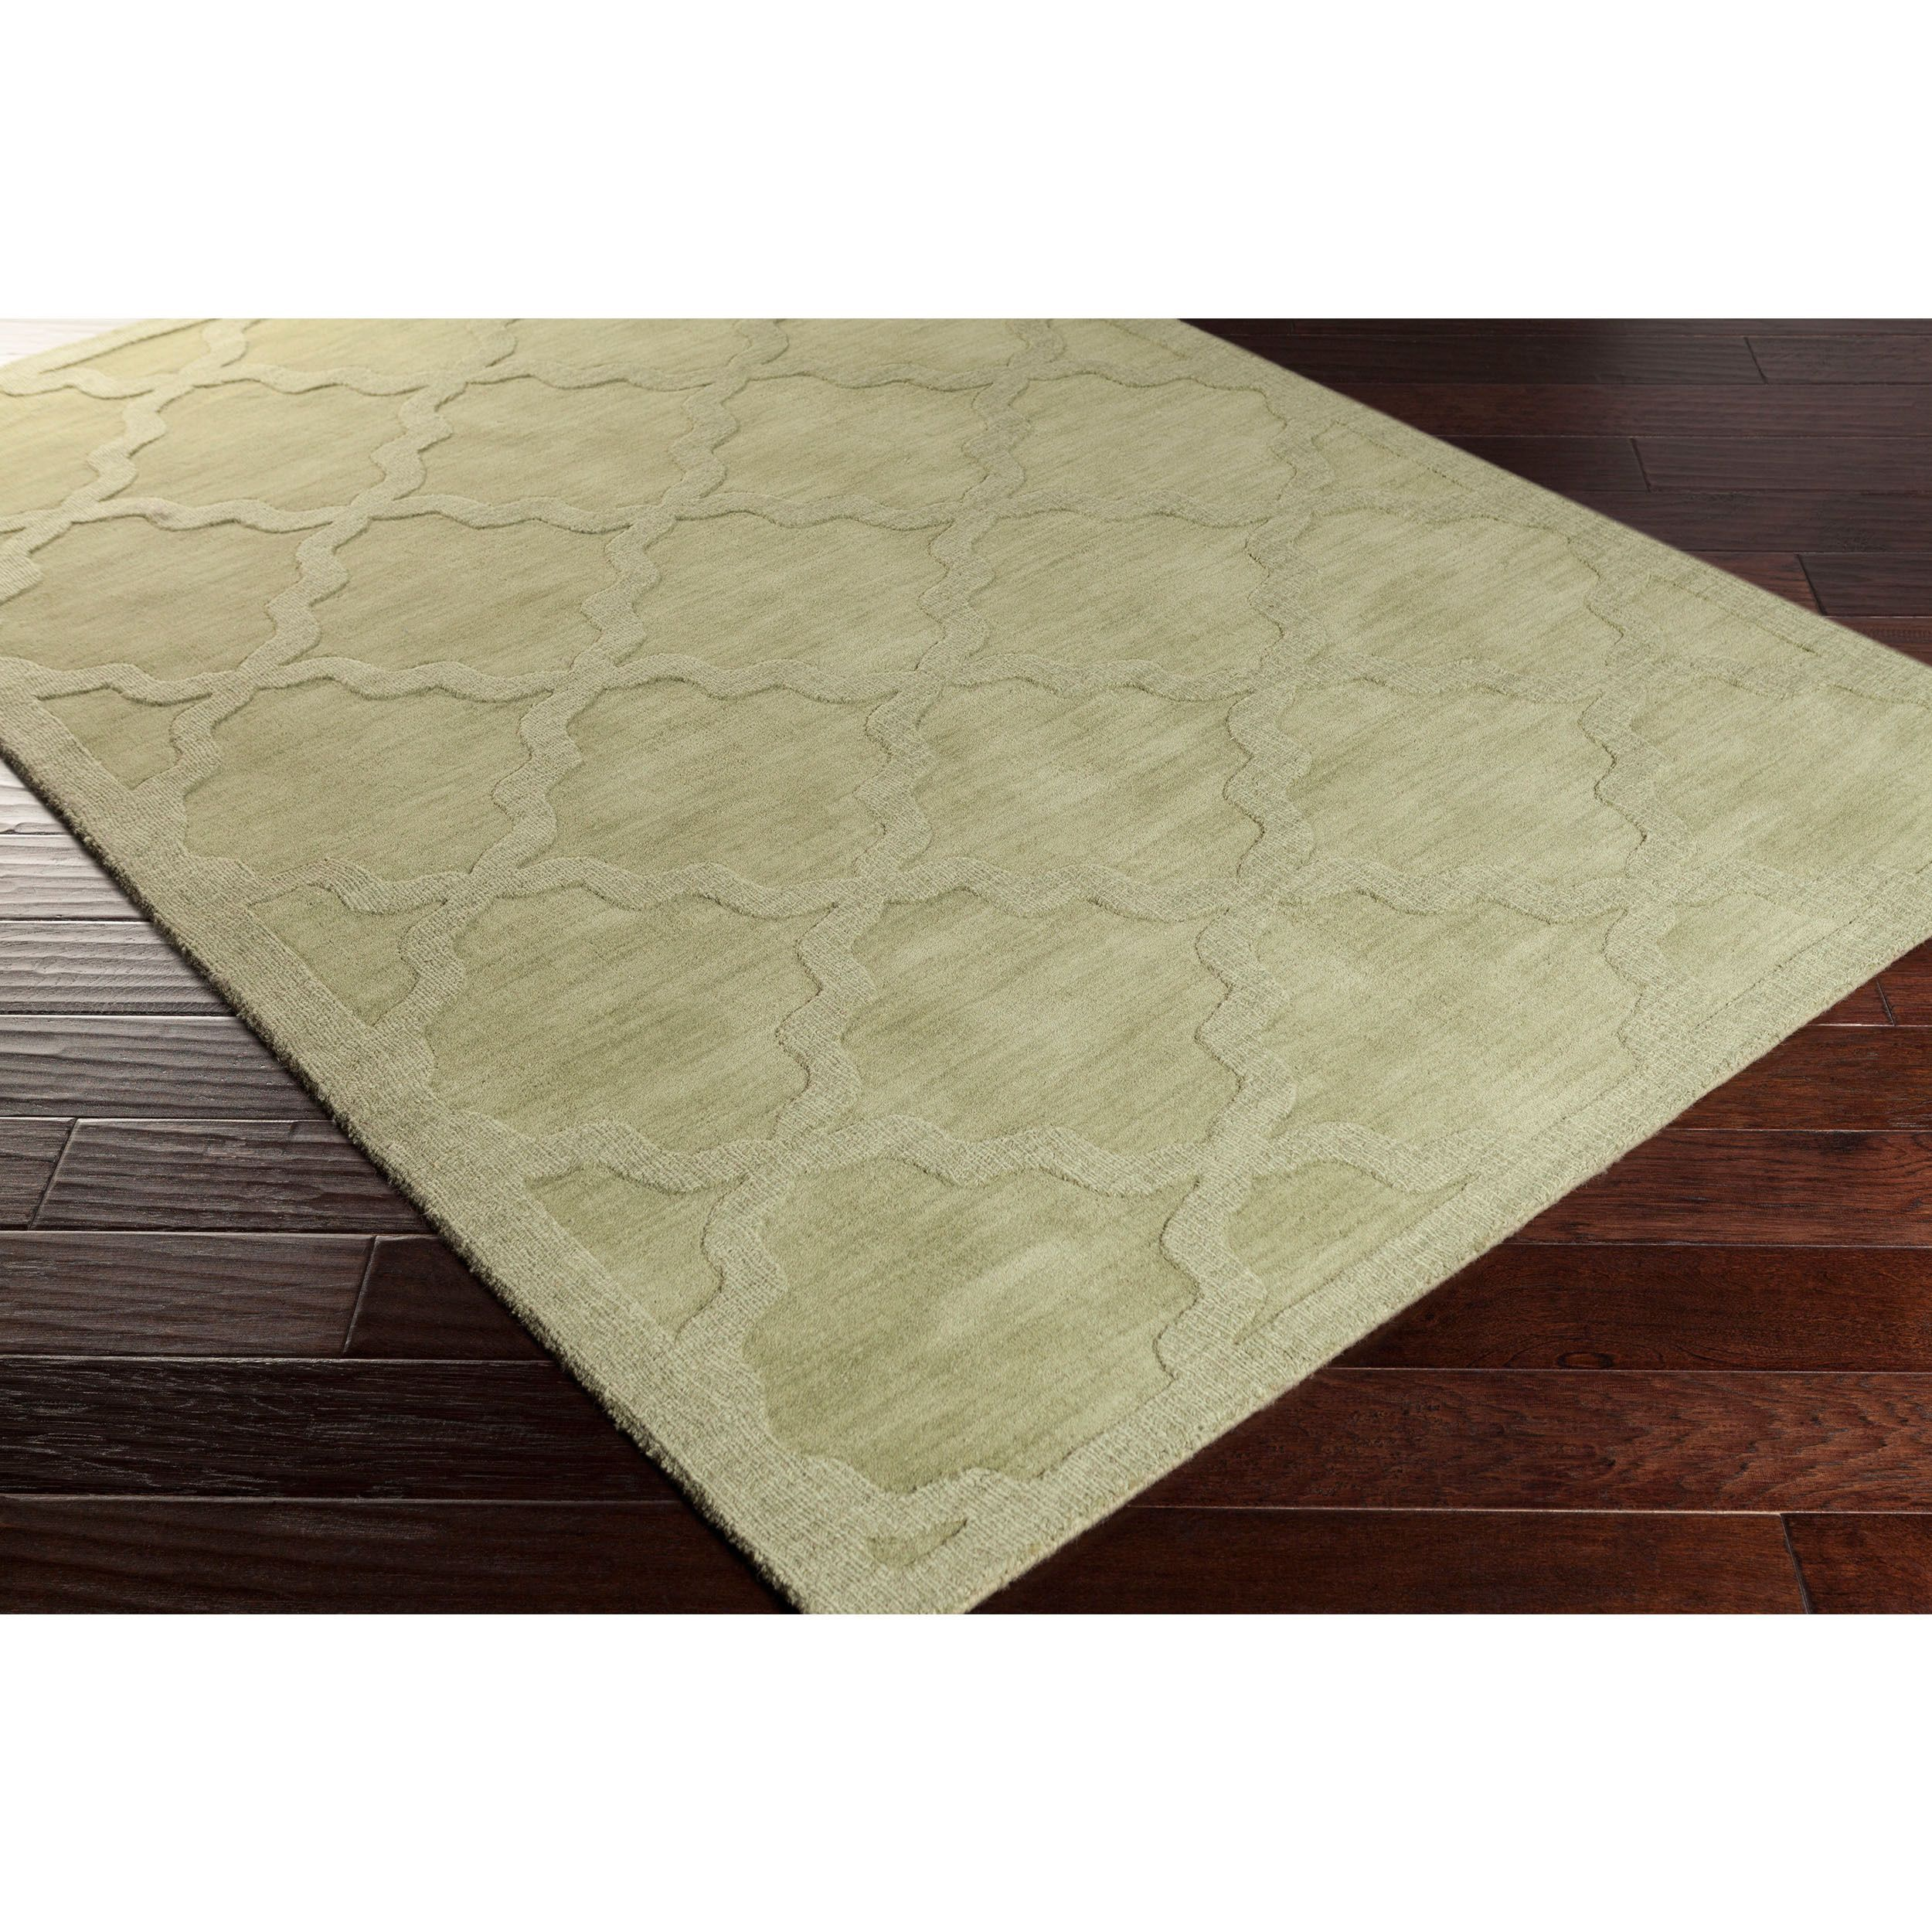 Surya Hand Woven Amy Tone On Tone Lattice Wool Rug (8u0027